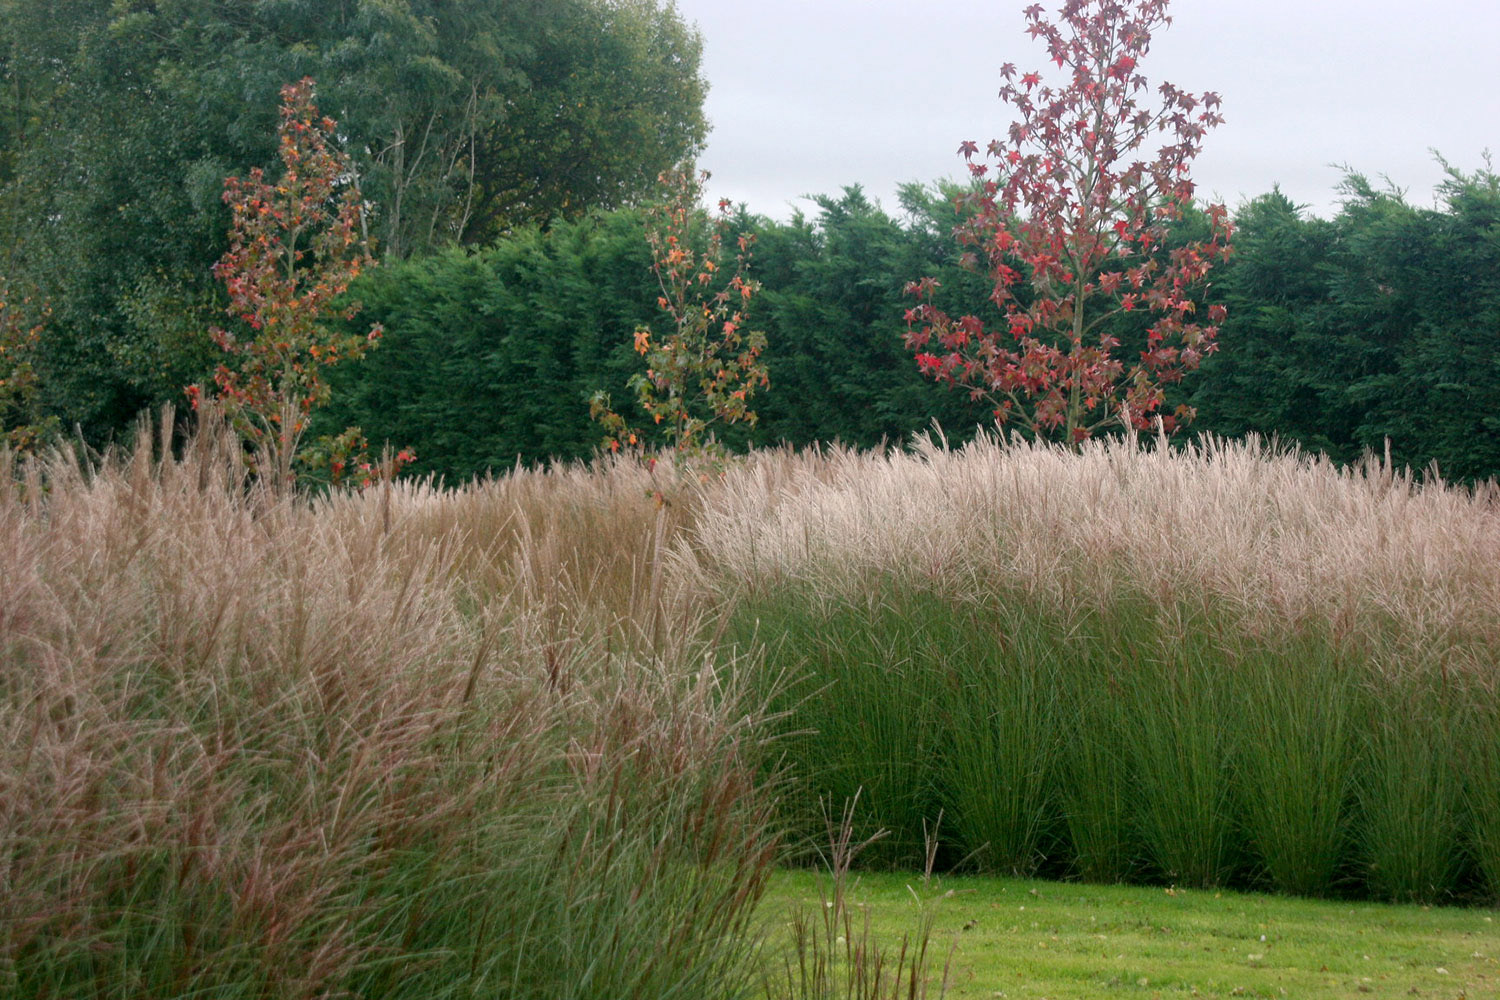 Rae Wilkinson Garden and Landscape Design - Garden Designer Sussex, Surrey, London, South-East England